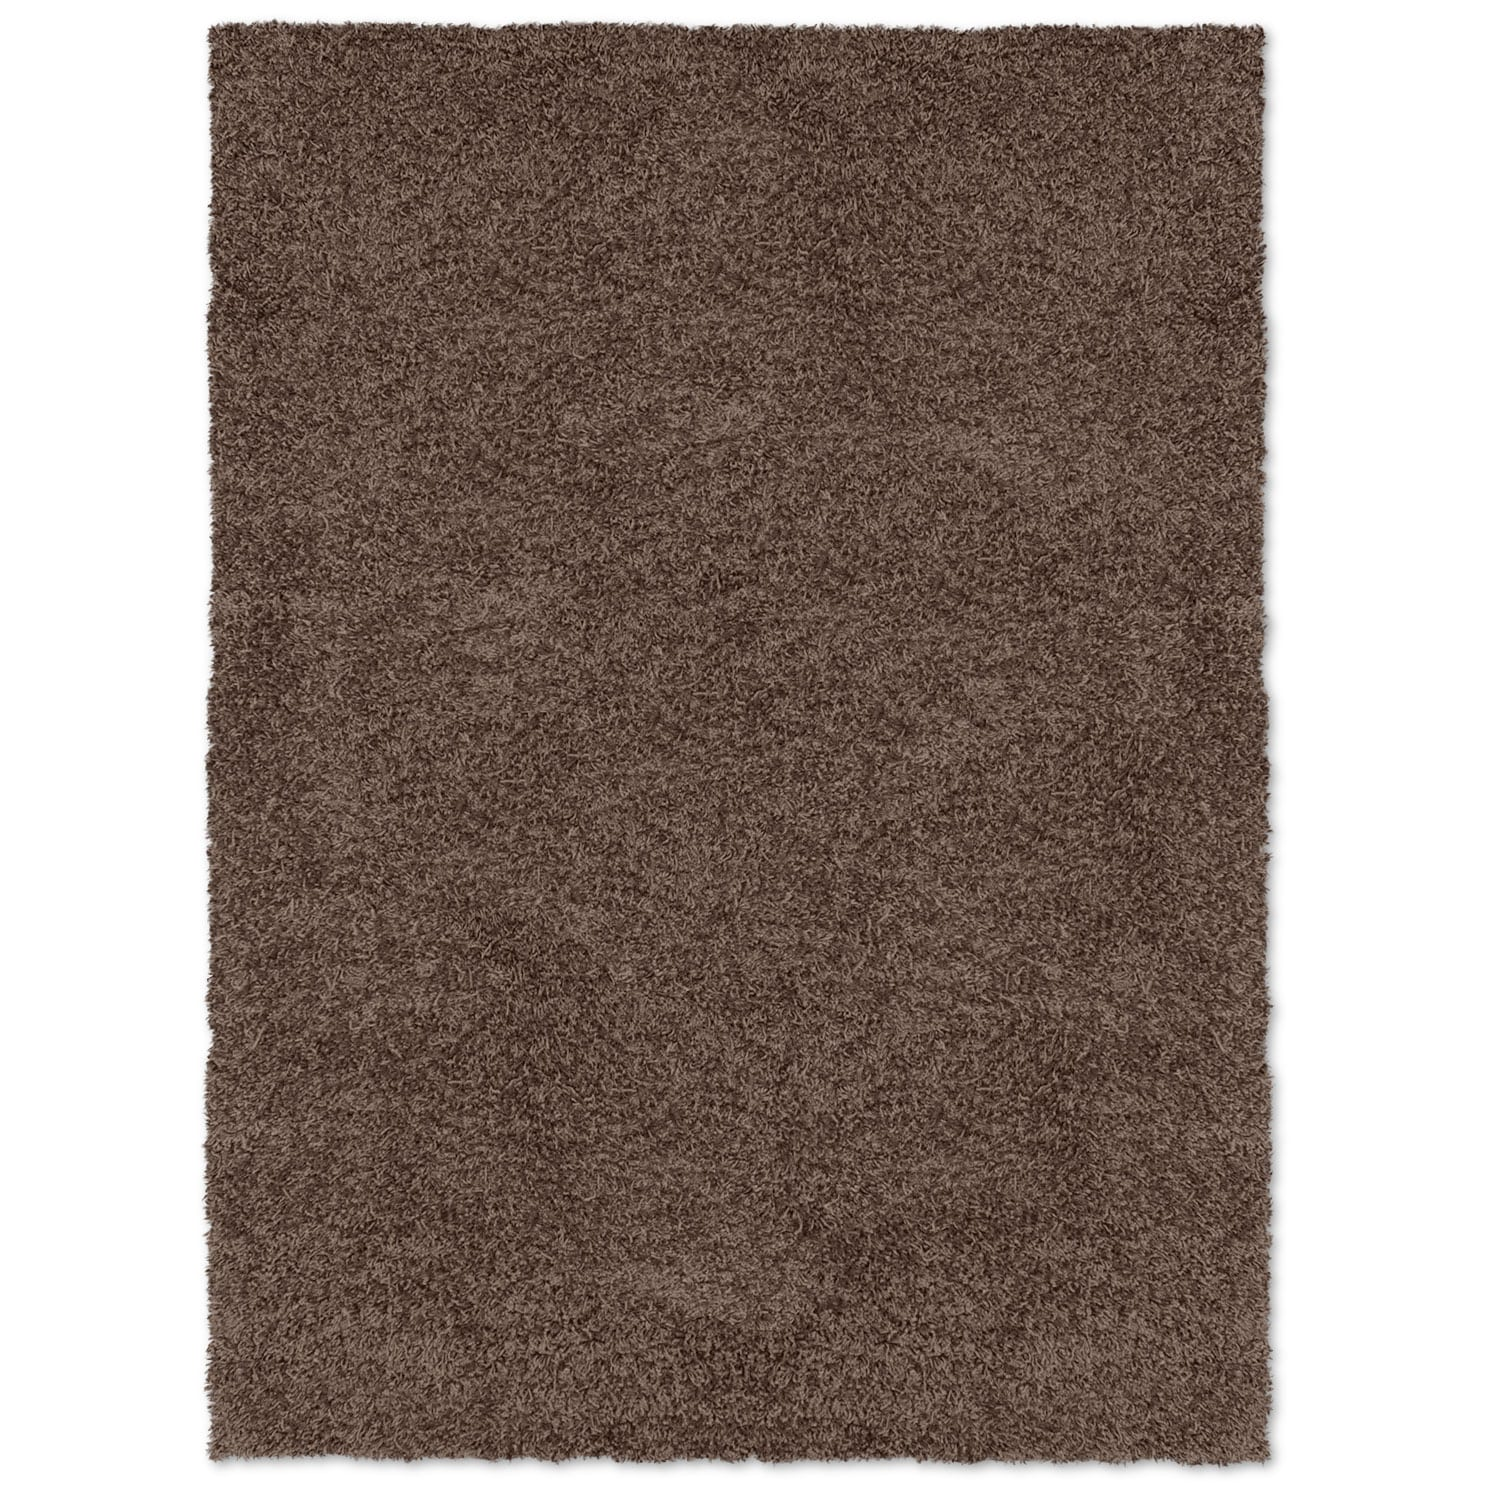 Comfort Chocolate Shag Area Rug (8' x 10')